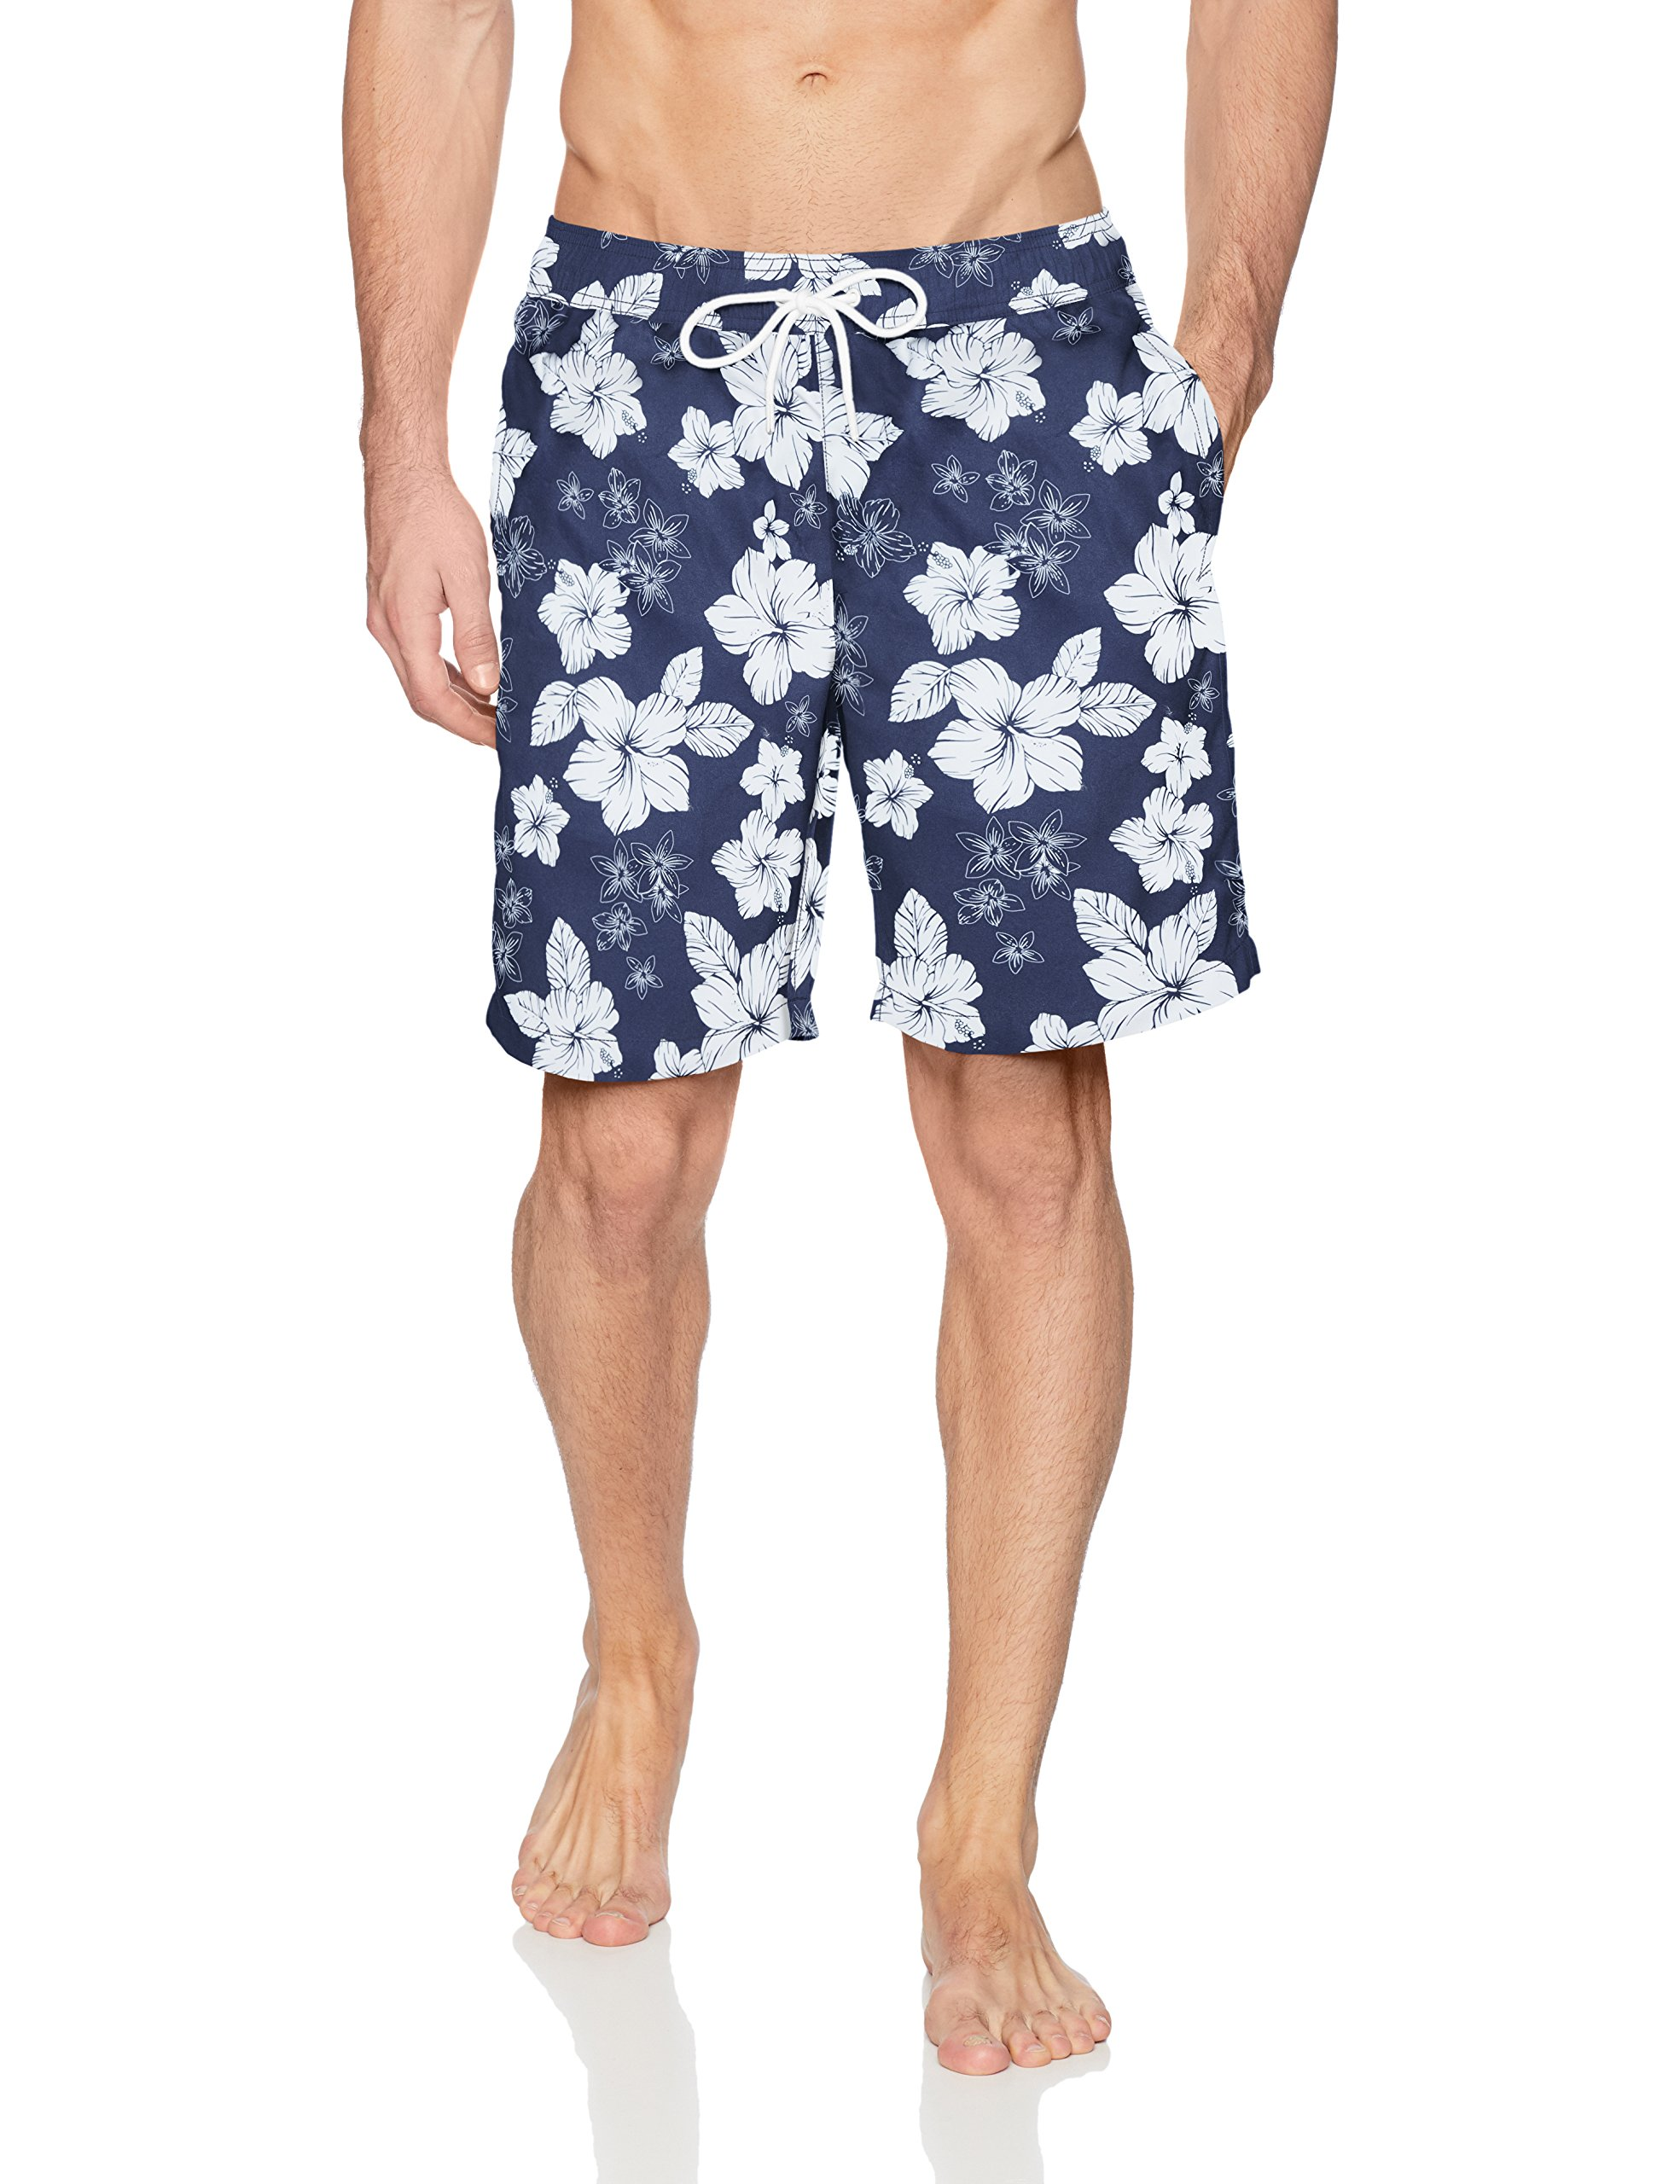 Amazon Essentials Men's Quick-Dry Print 9'' Swim Trunk, Navy Hibiscus Print, X-Large